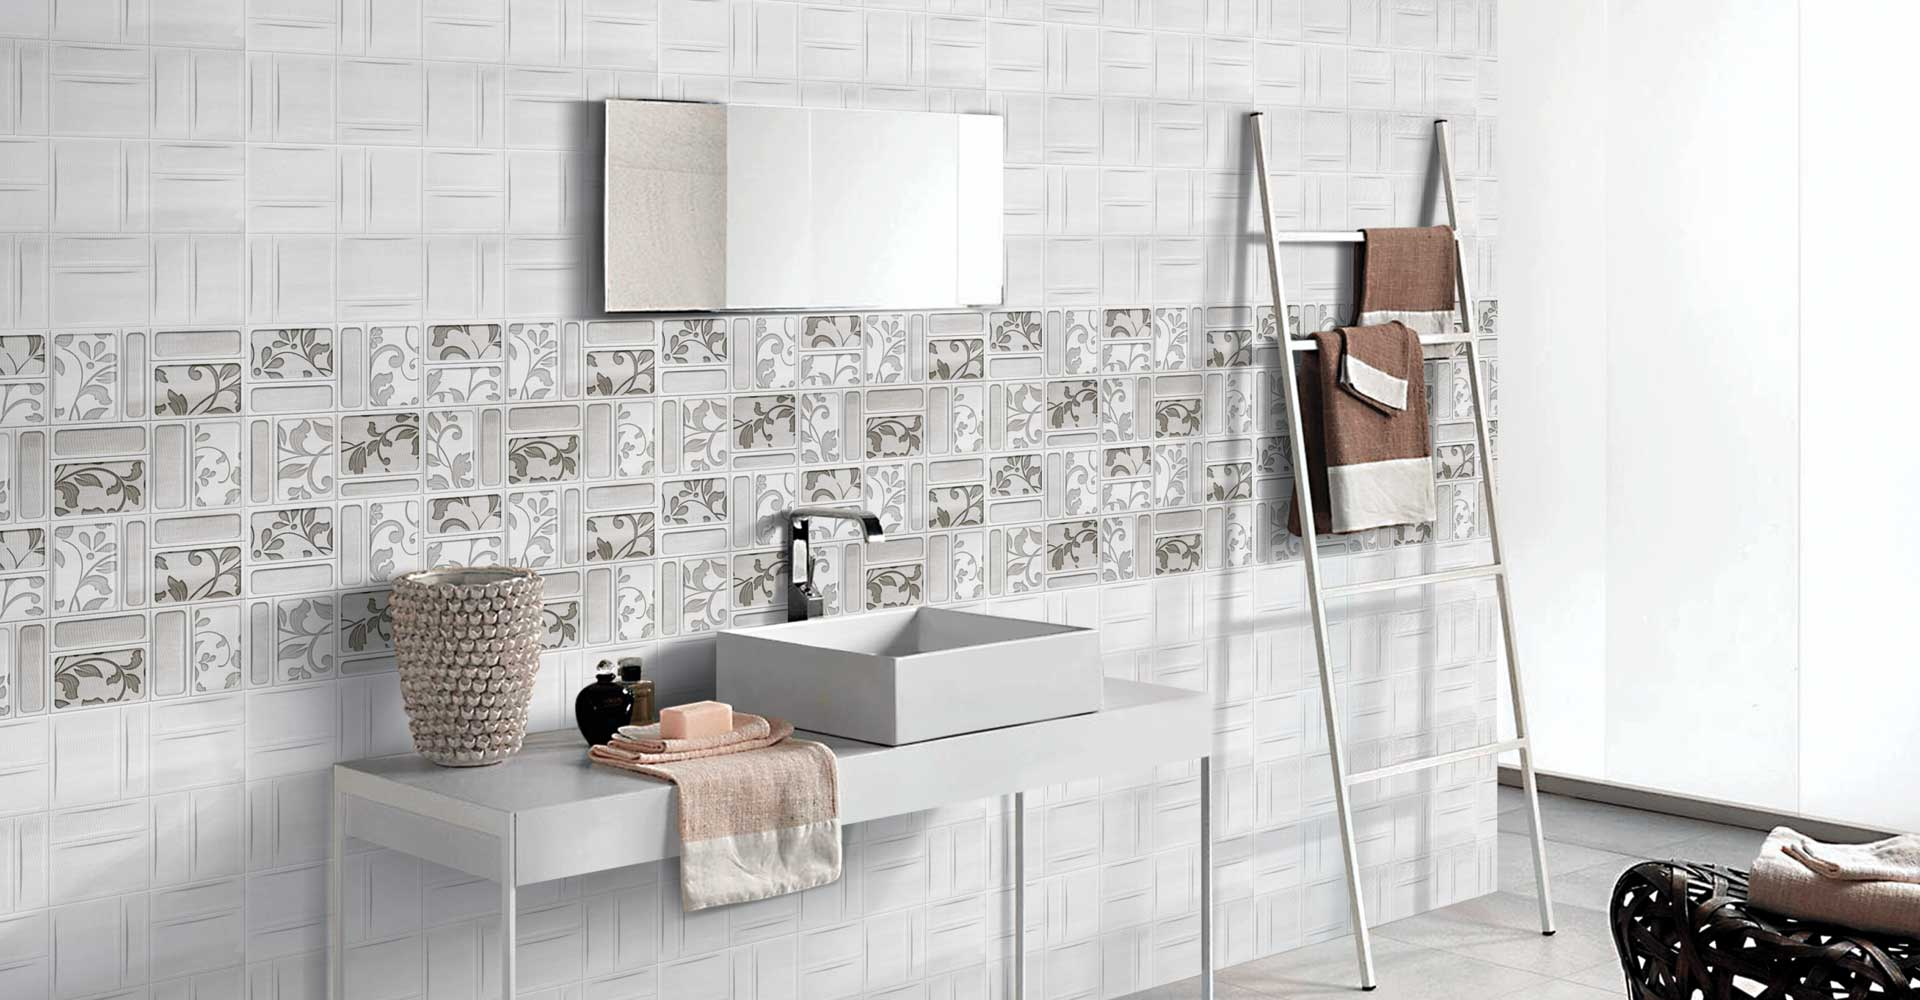 Buy Premium Quality Products from Q-BO Digital Wall Tiles ...